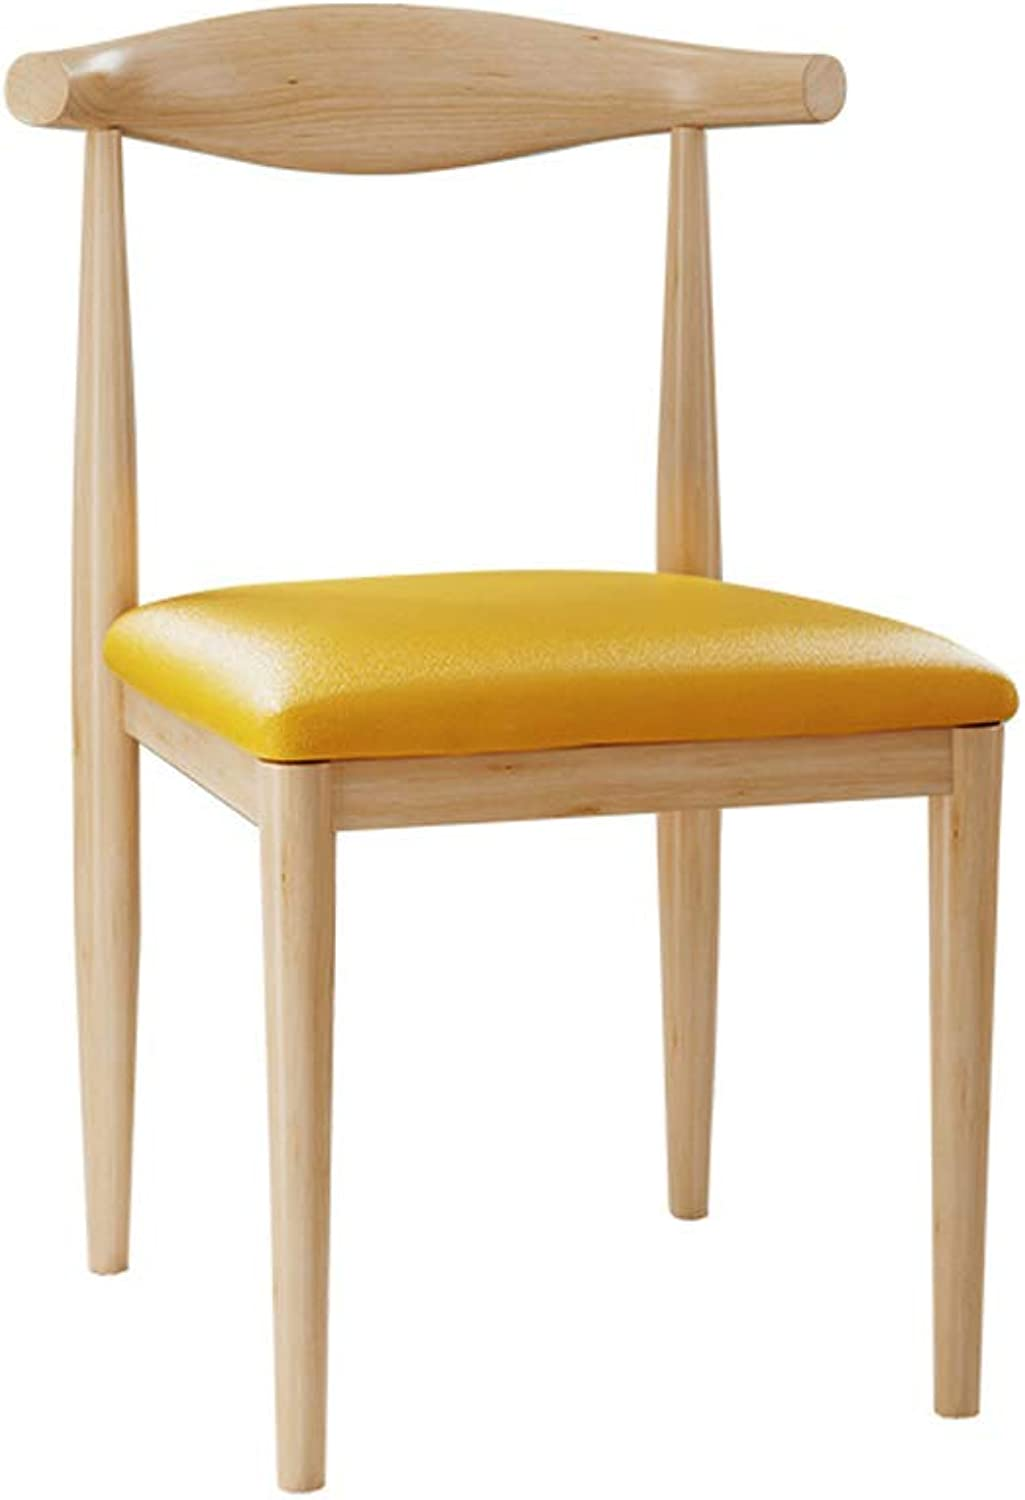 MXD Chair Creative Computer Chair Home Stool Chair Modern Minimalist Wrought Iron Dining Chair (color   Yellow)